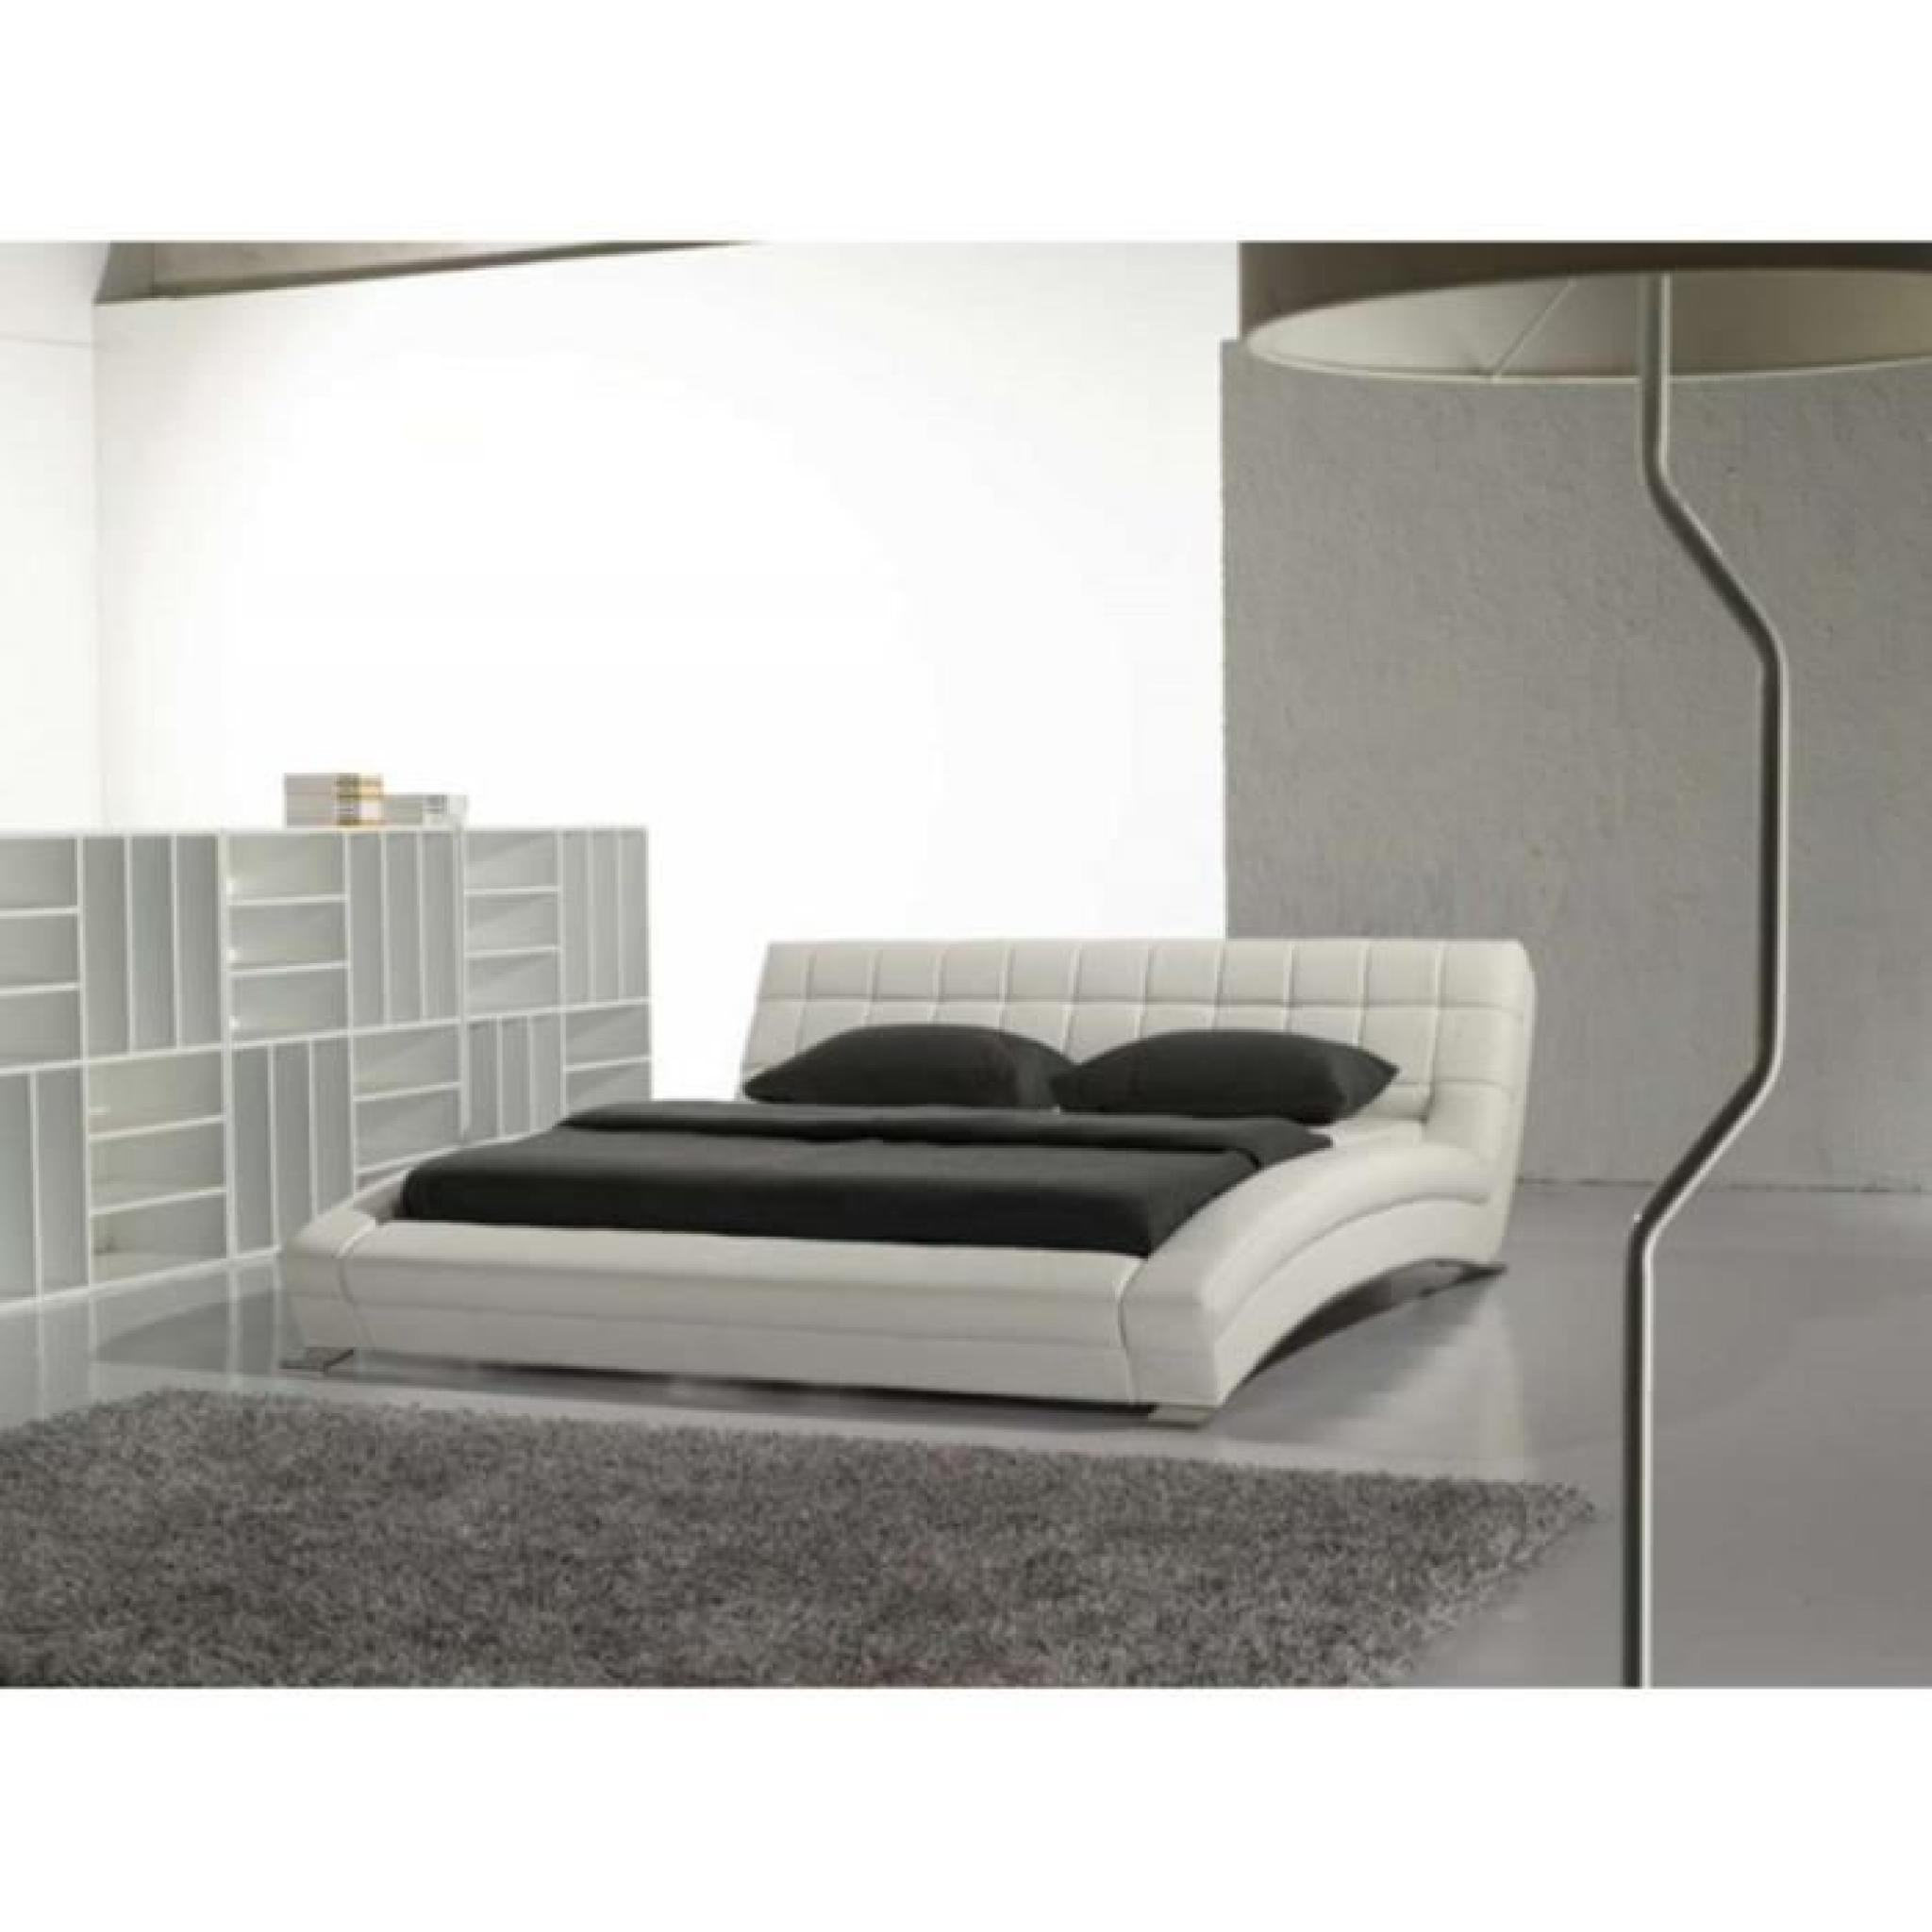 justhome soho blanc lit rembourr en cuir cologique taille 140 x 200 cm achat vente lit pas. Black Bedroom Furniture Sets. Home Design Ideas